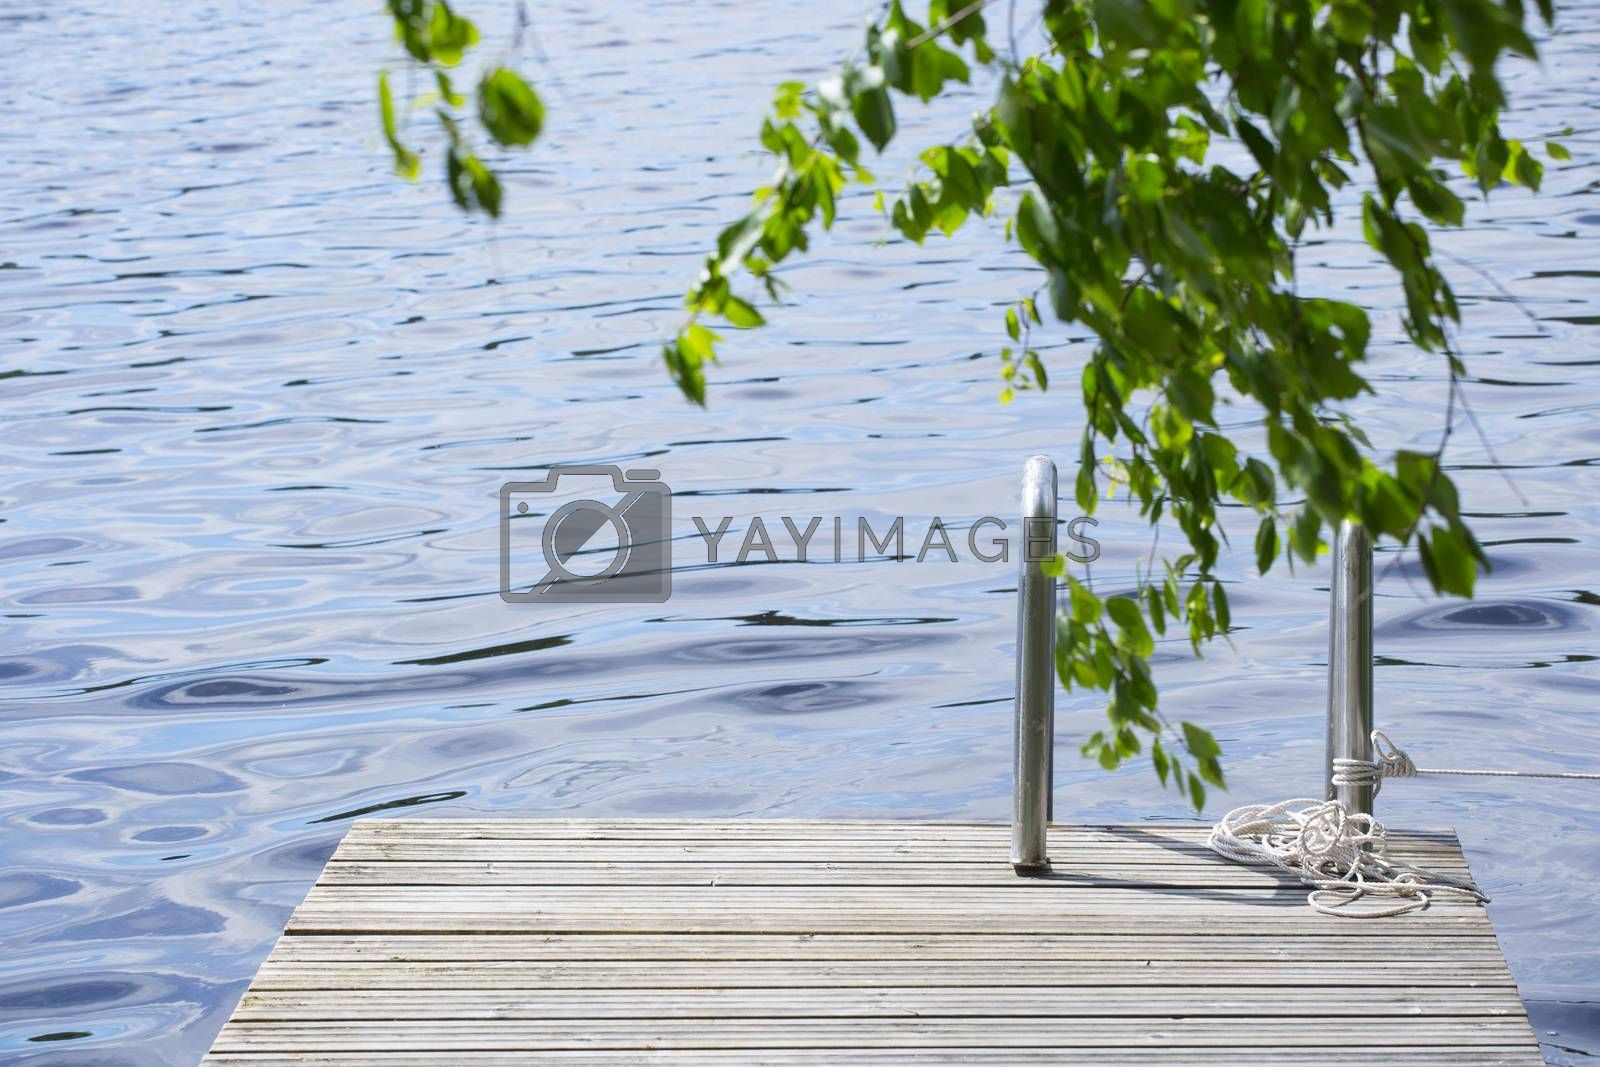 Wooden walkway jetty pier with railing for swimming in lake in Finland